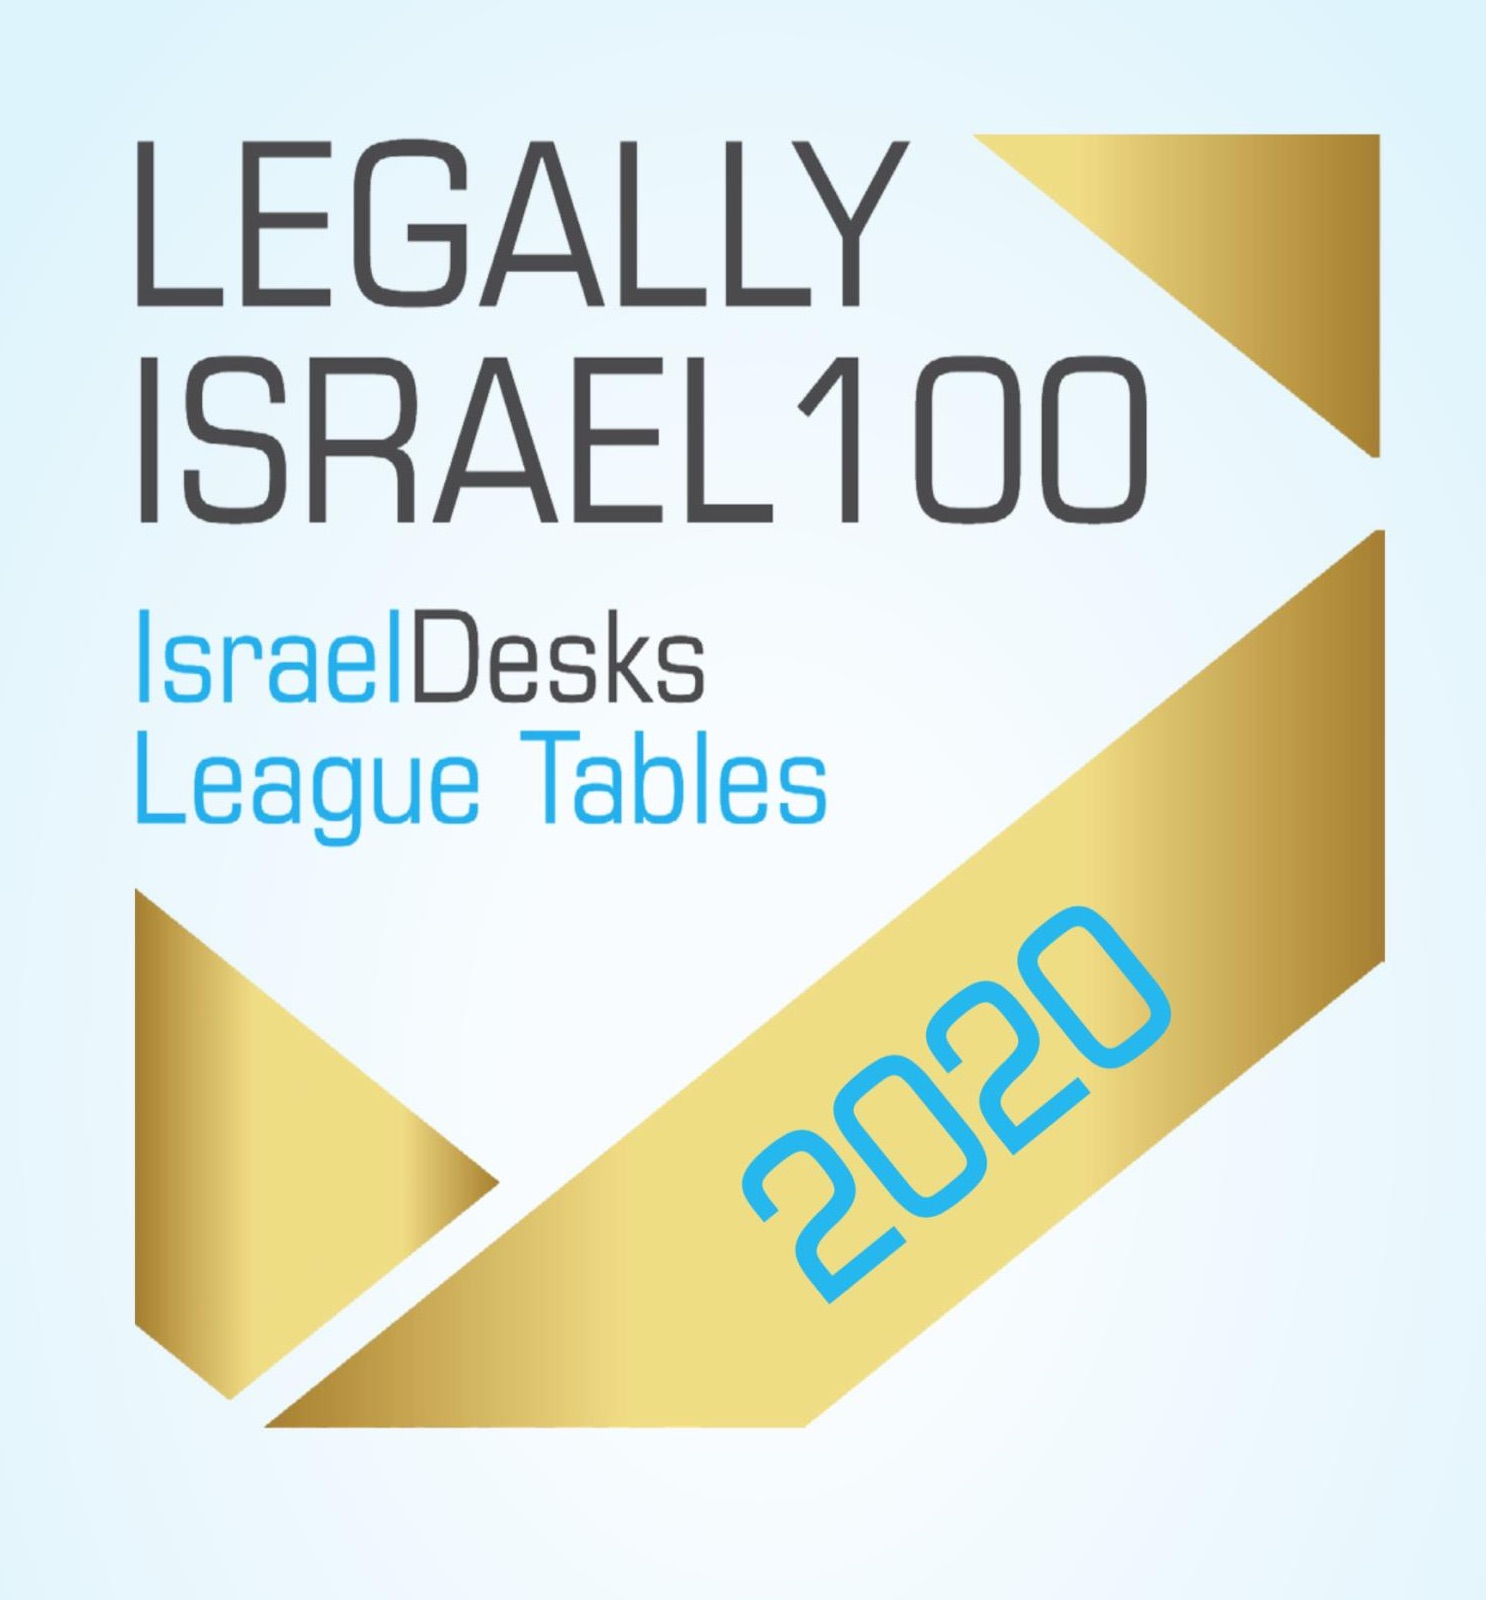 2020 Ranking of International Law Firms with an Israel Desk